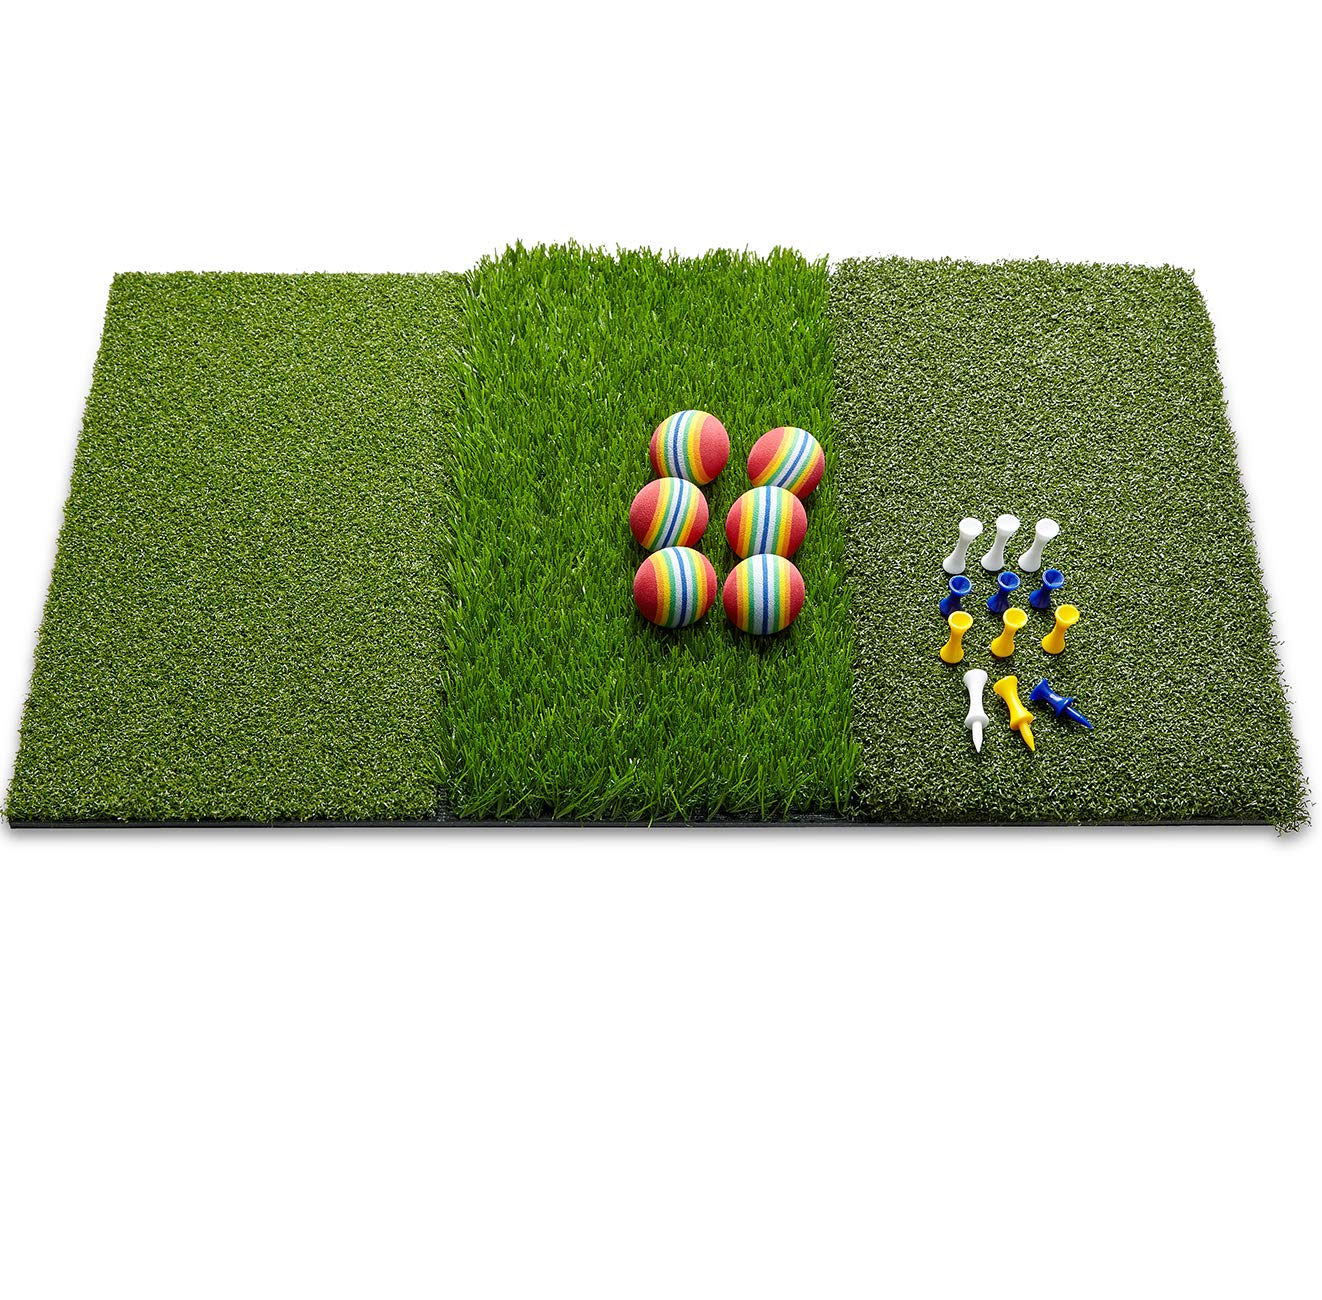 """wosofe Golf Mat Chipping Hitting 25"""" x16"""" 3in1 Foldable - Practice Turf Backyard or Indoor Portable Premium Quality Realistic Multi Length Grass + 12 Extra Tees"""